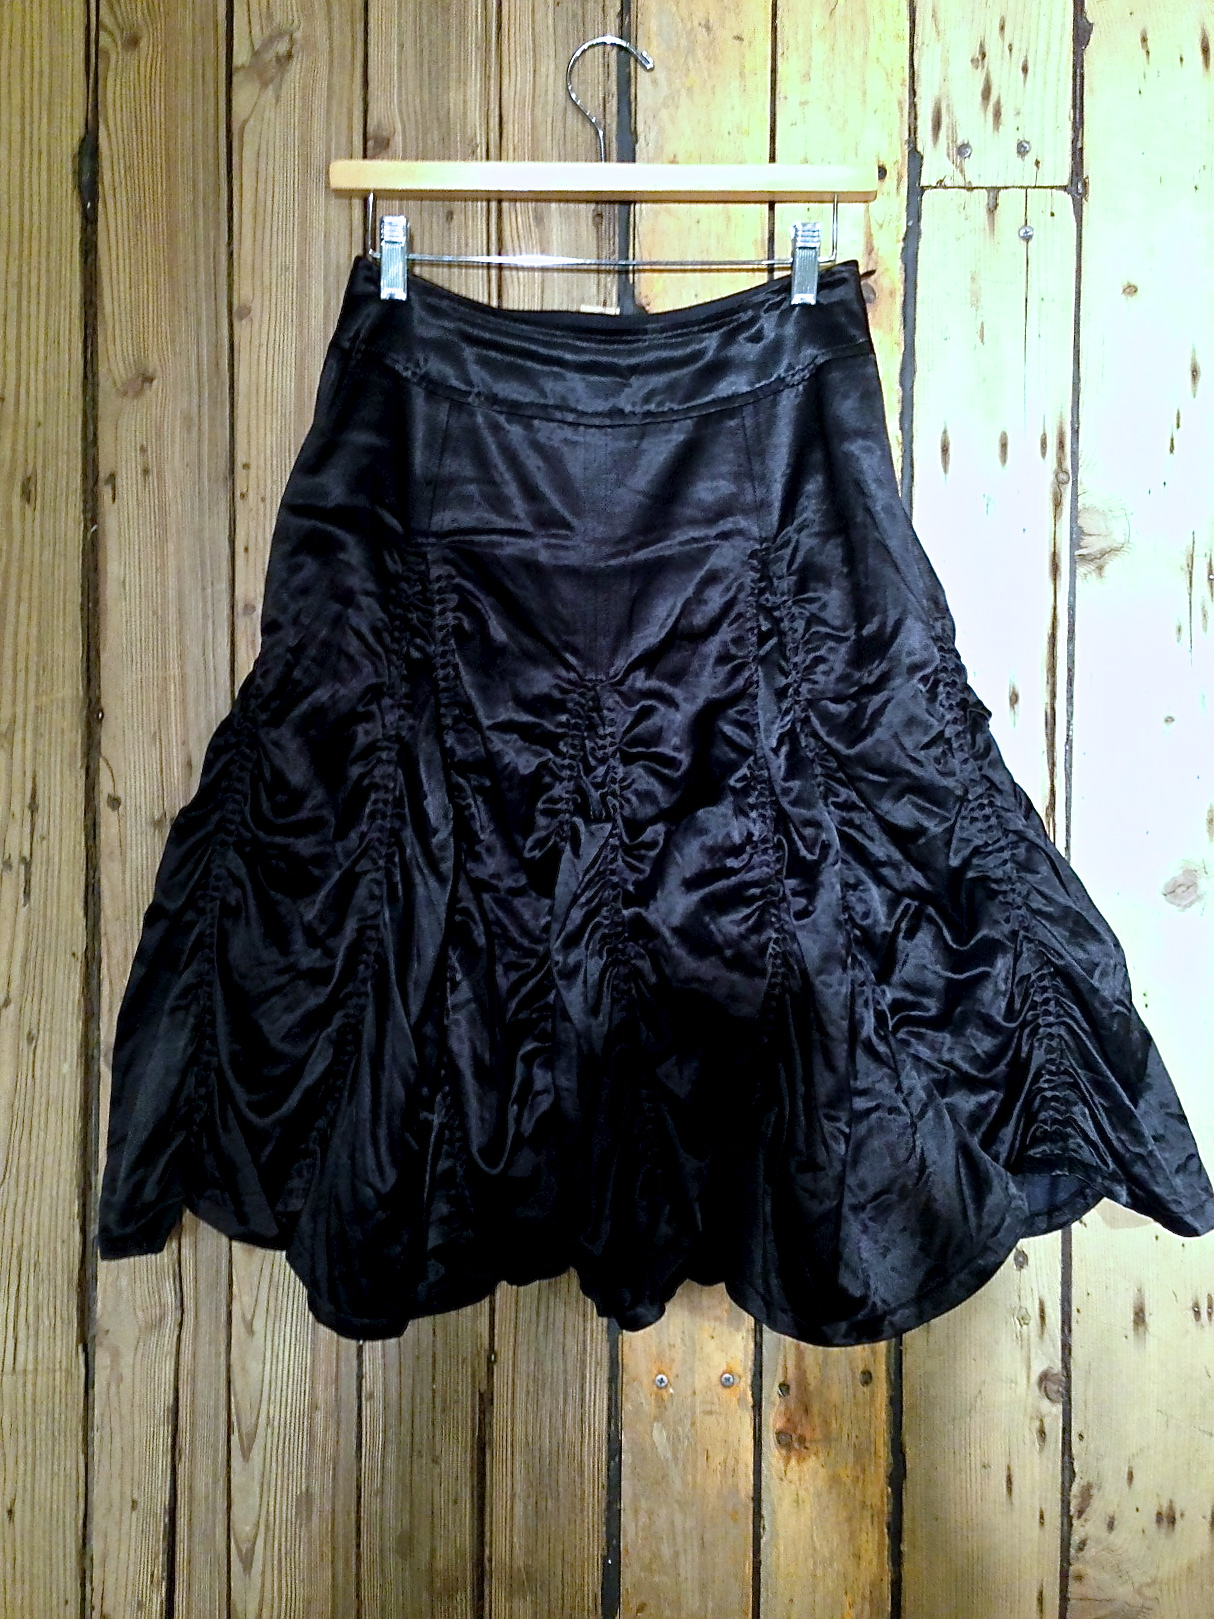 paraskirt_black_satin